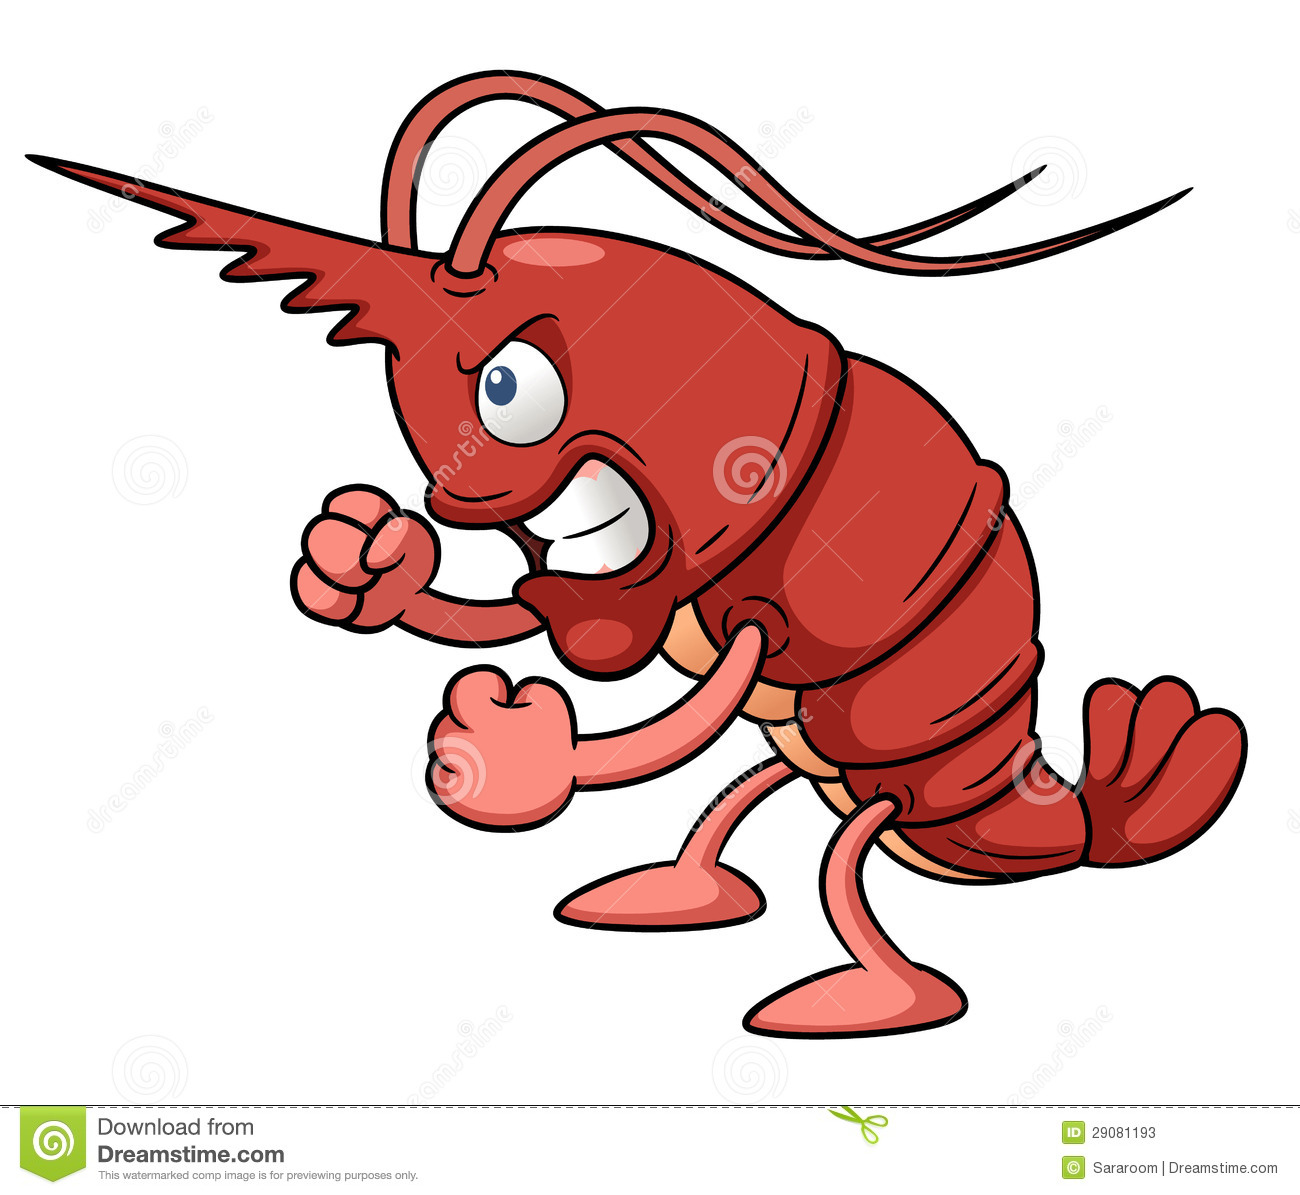 Cartoon shrimp stock vector. Illustration of macro, life - 29081193